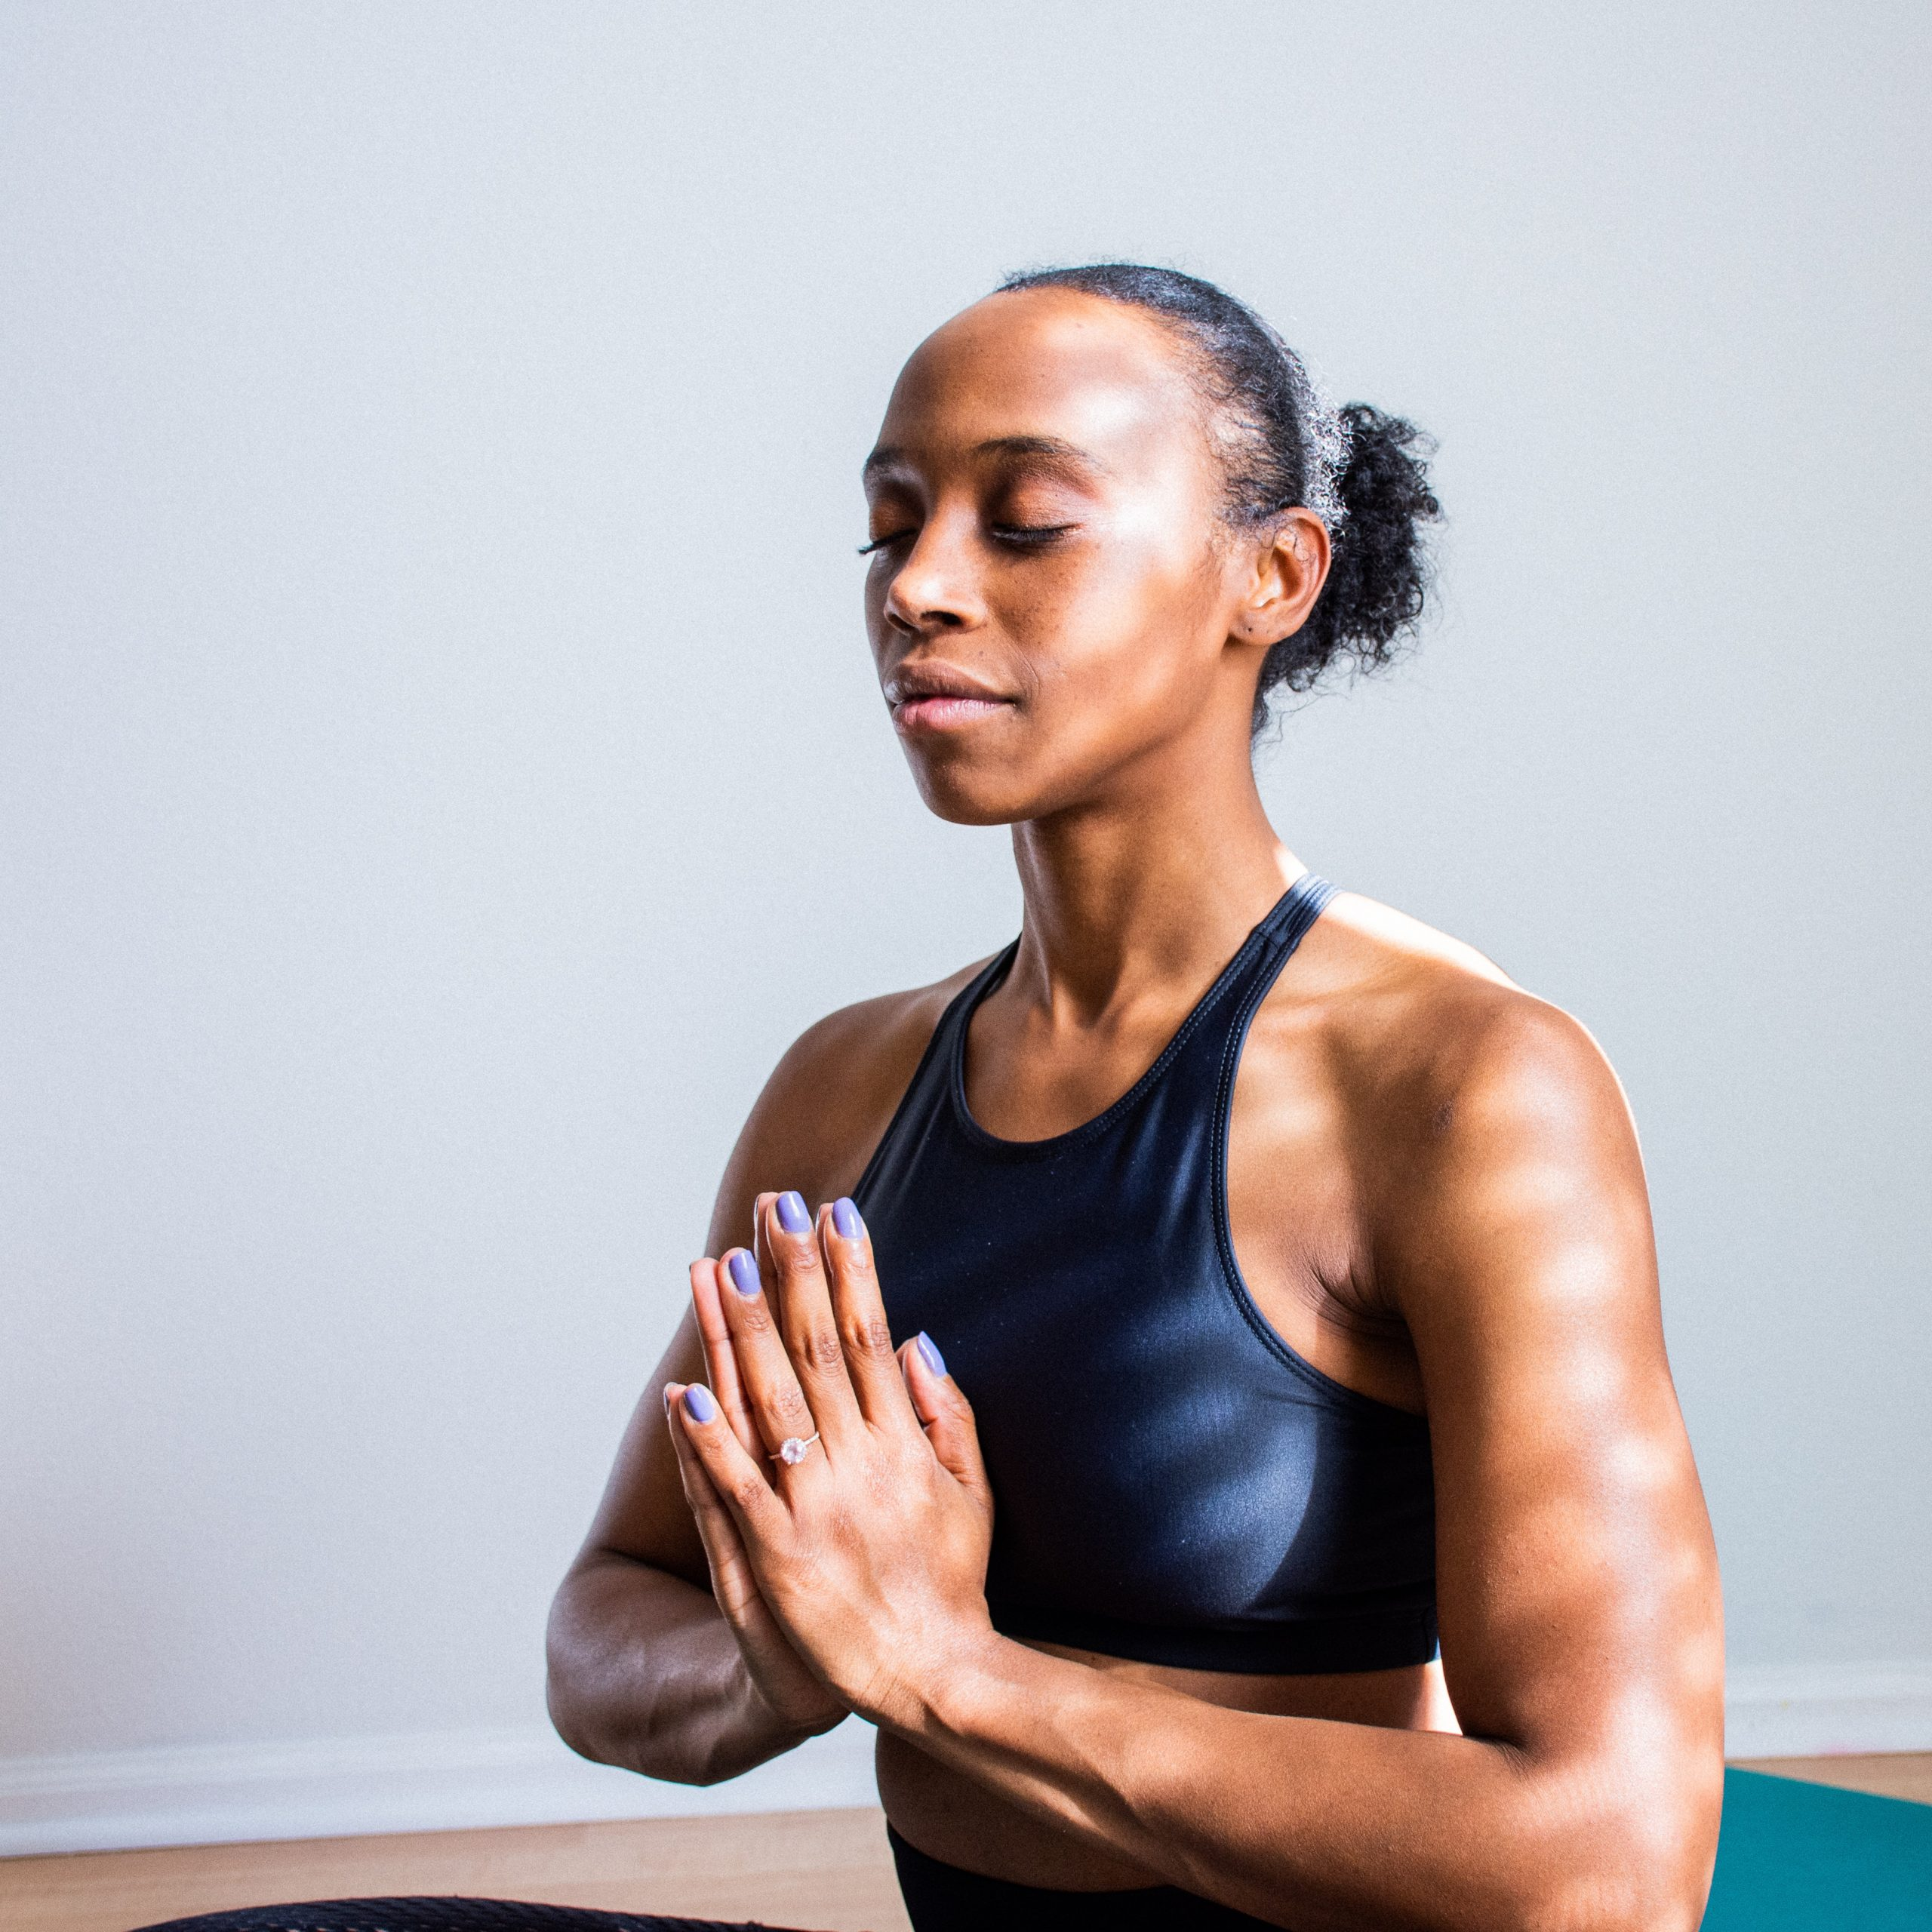 yoga and meditation help soothe anxiety